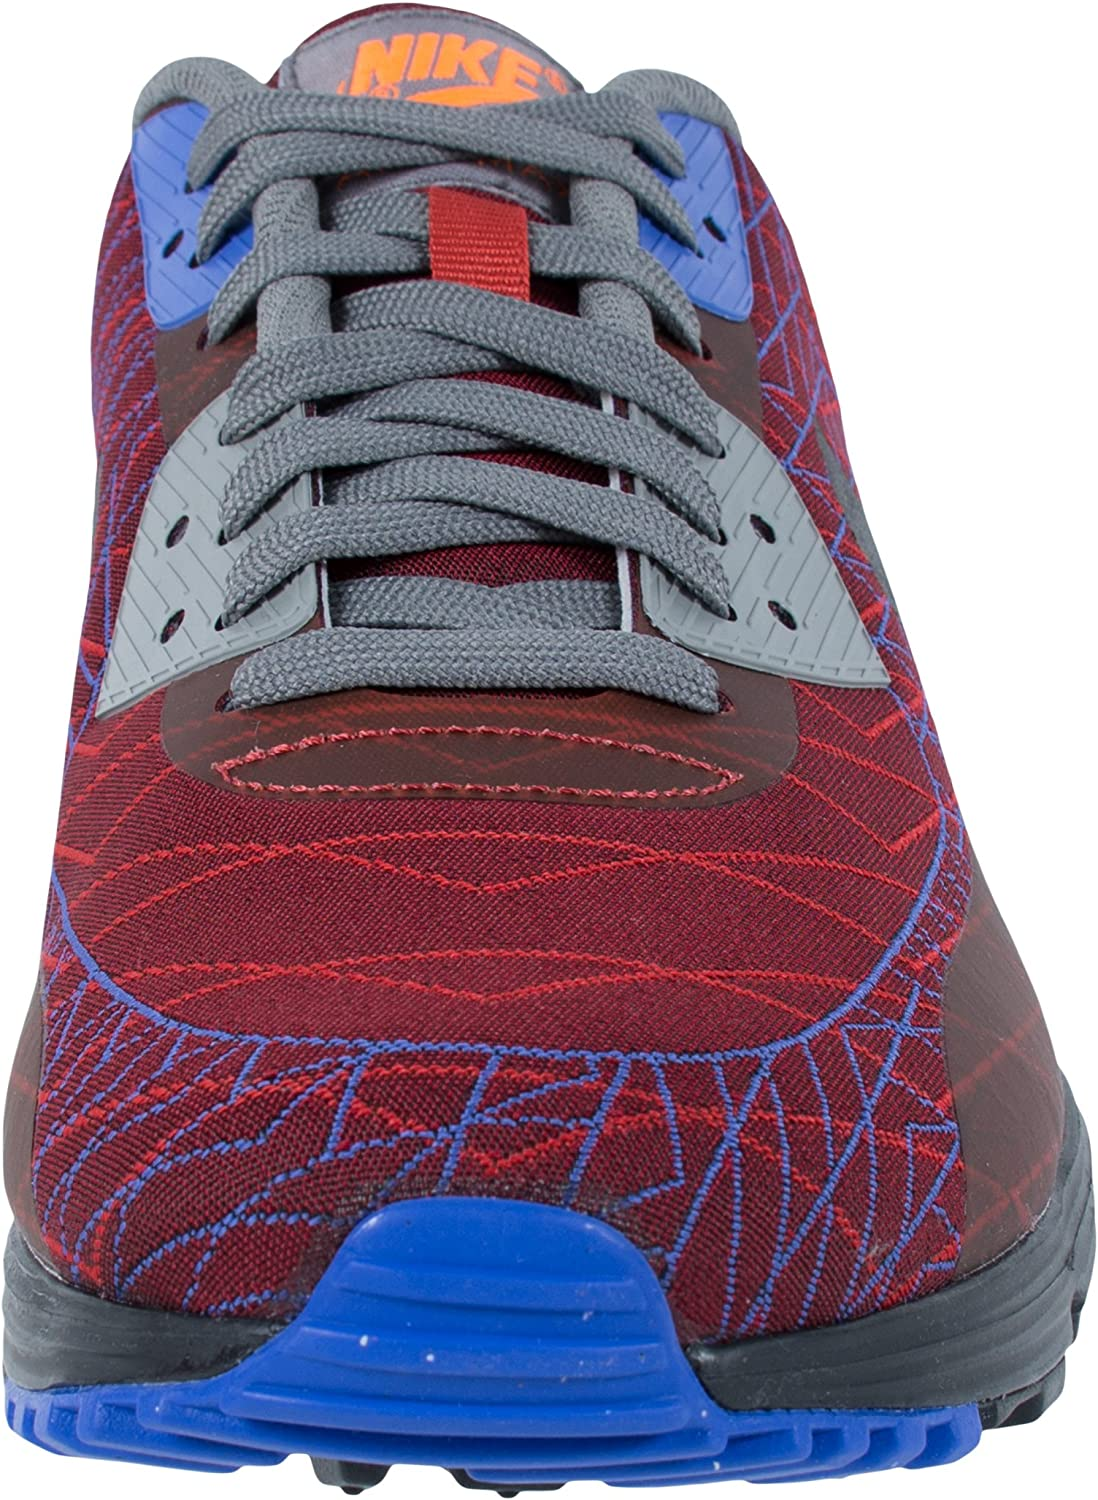 Nike Air Max Lunar 90 Jacquard Multi Mens Trainers 8.5 US